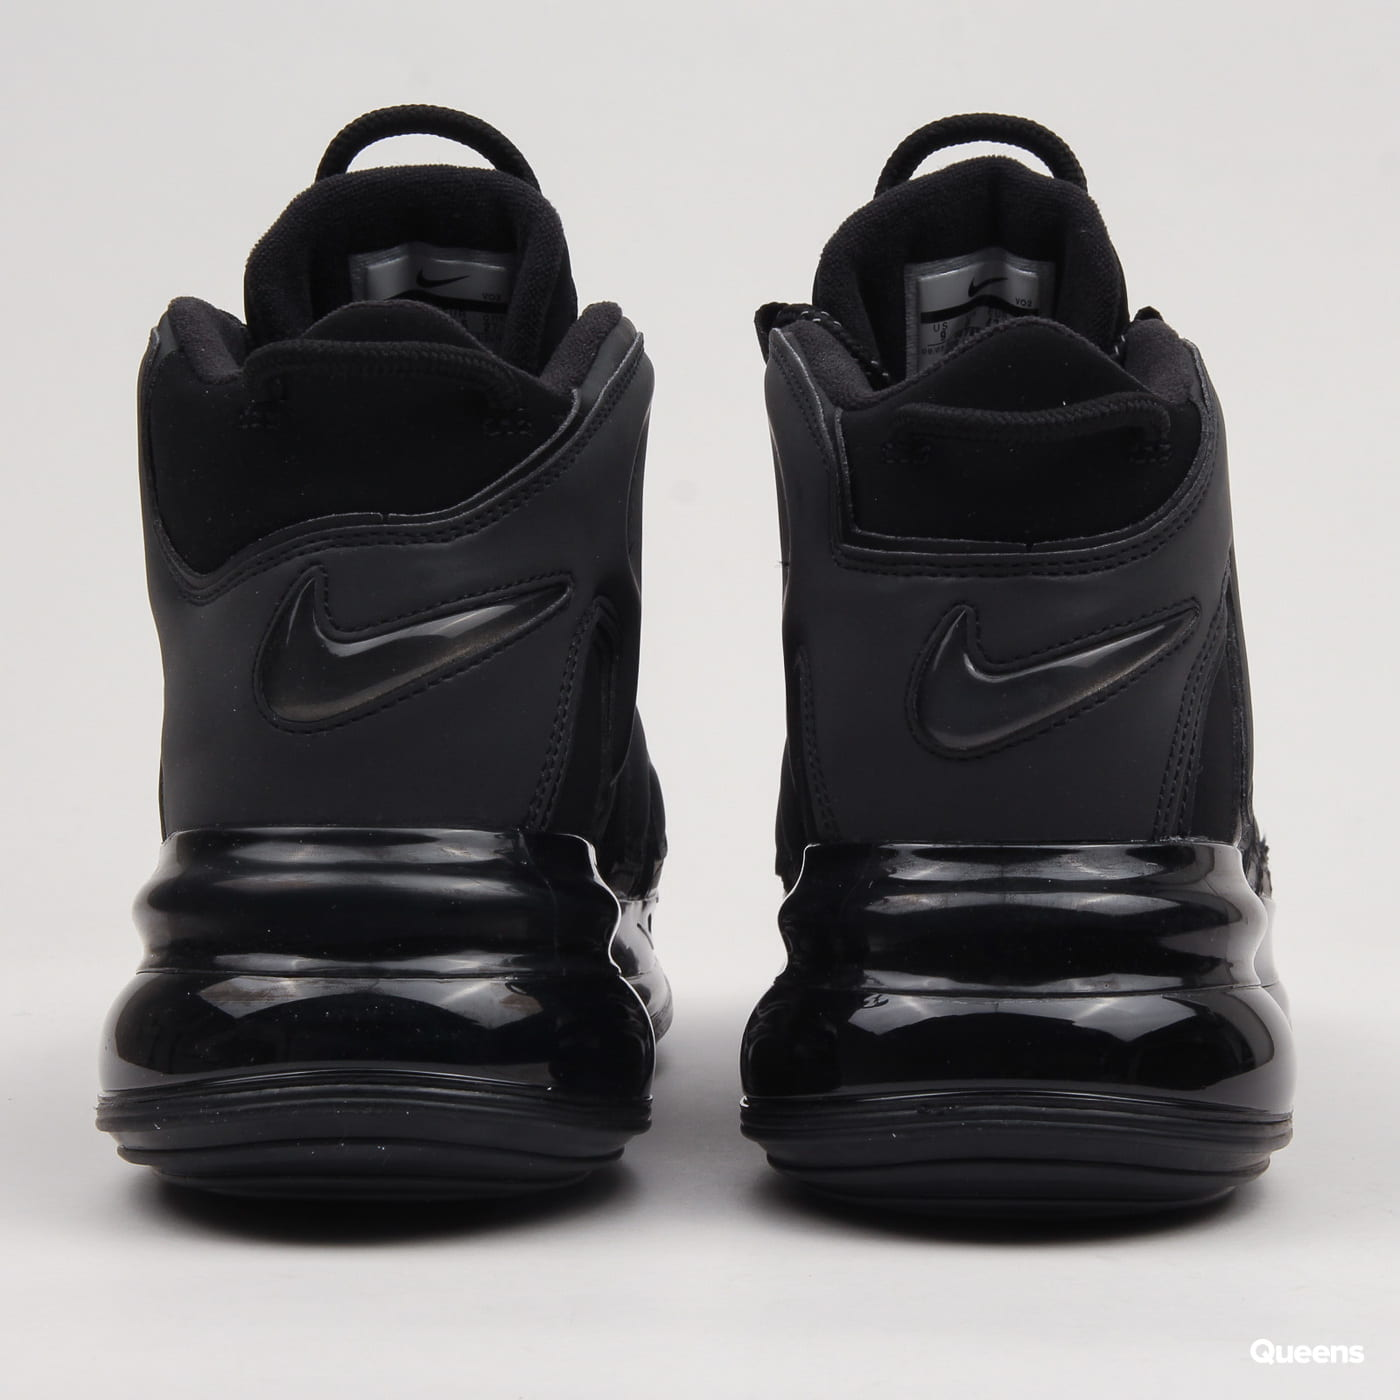 huge selection of ccb06 98a44 Zoom in Zoom in Zoom in Zoom in Zoom in. Nike Air More Uptempo 720 QS 1  black   metallic ...